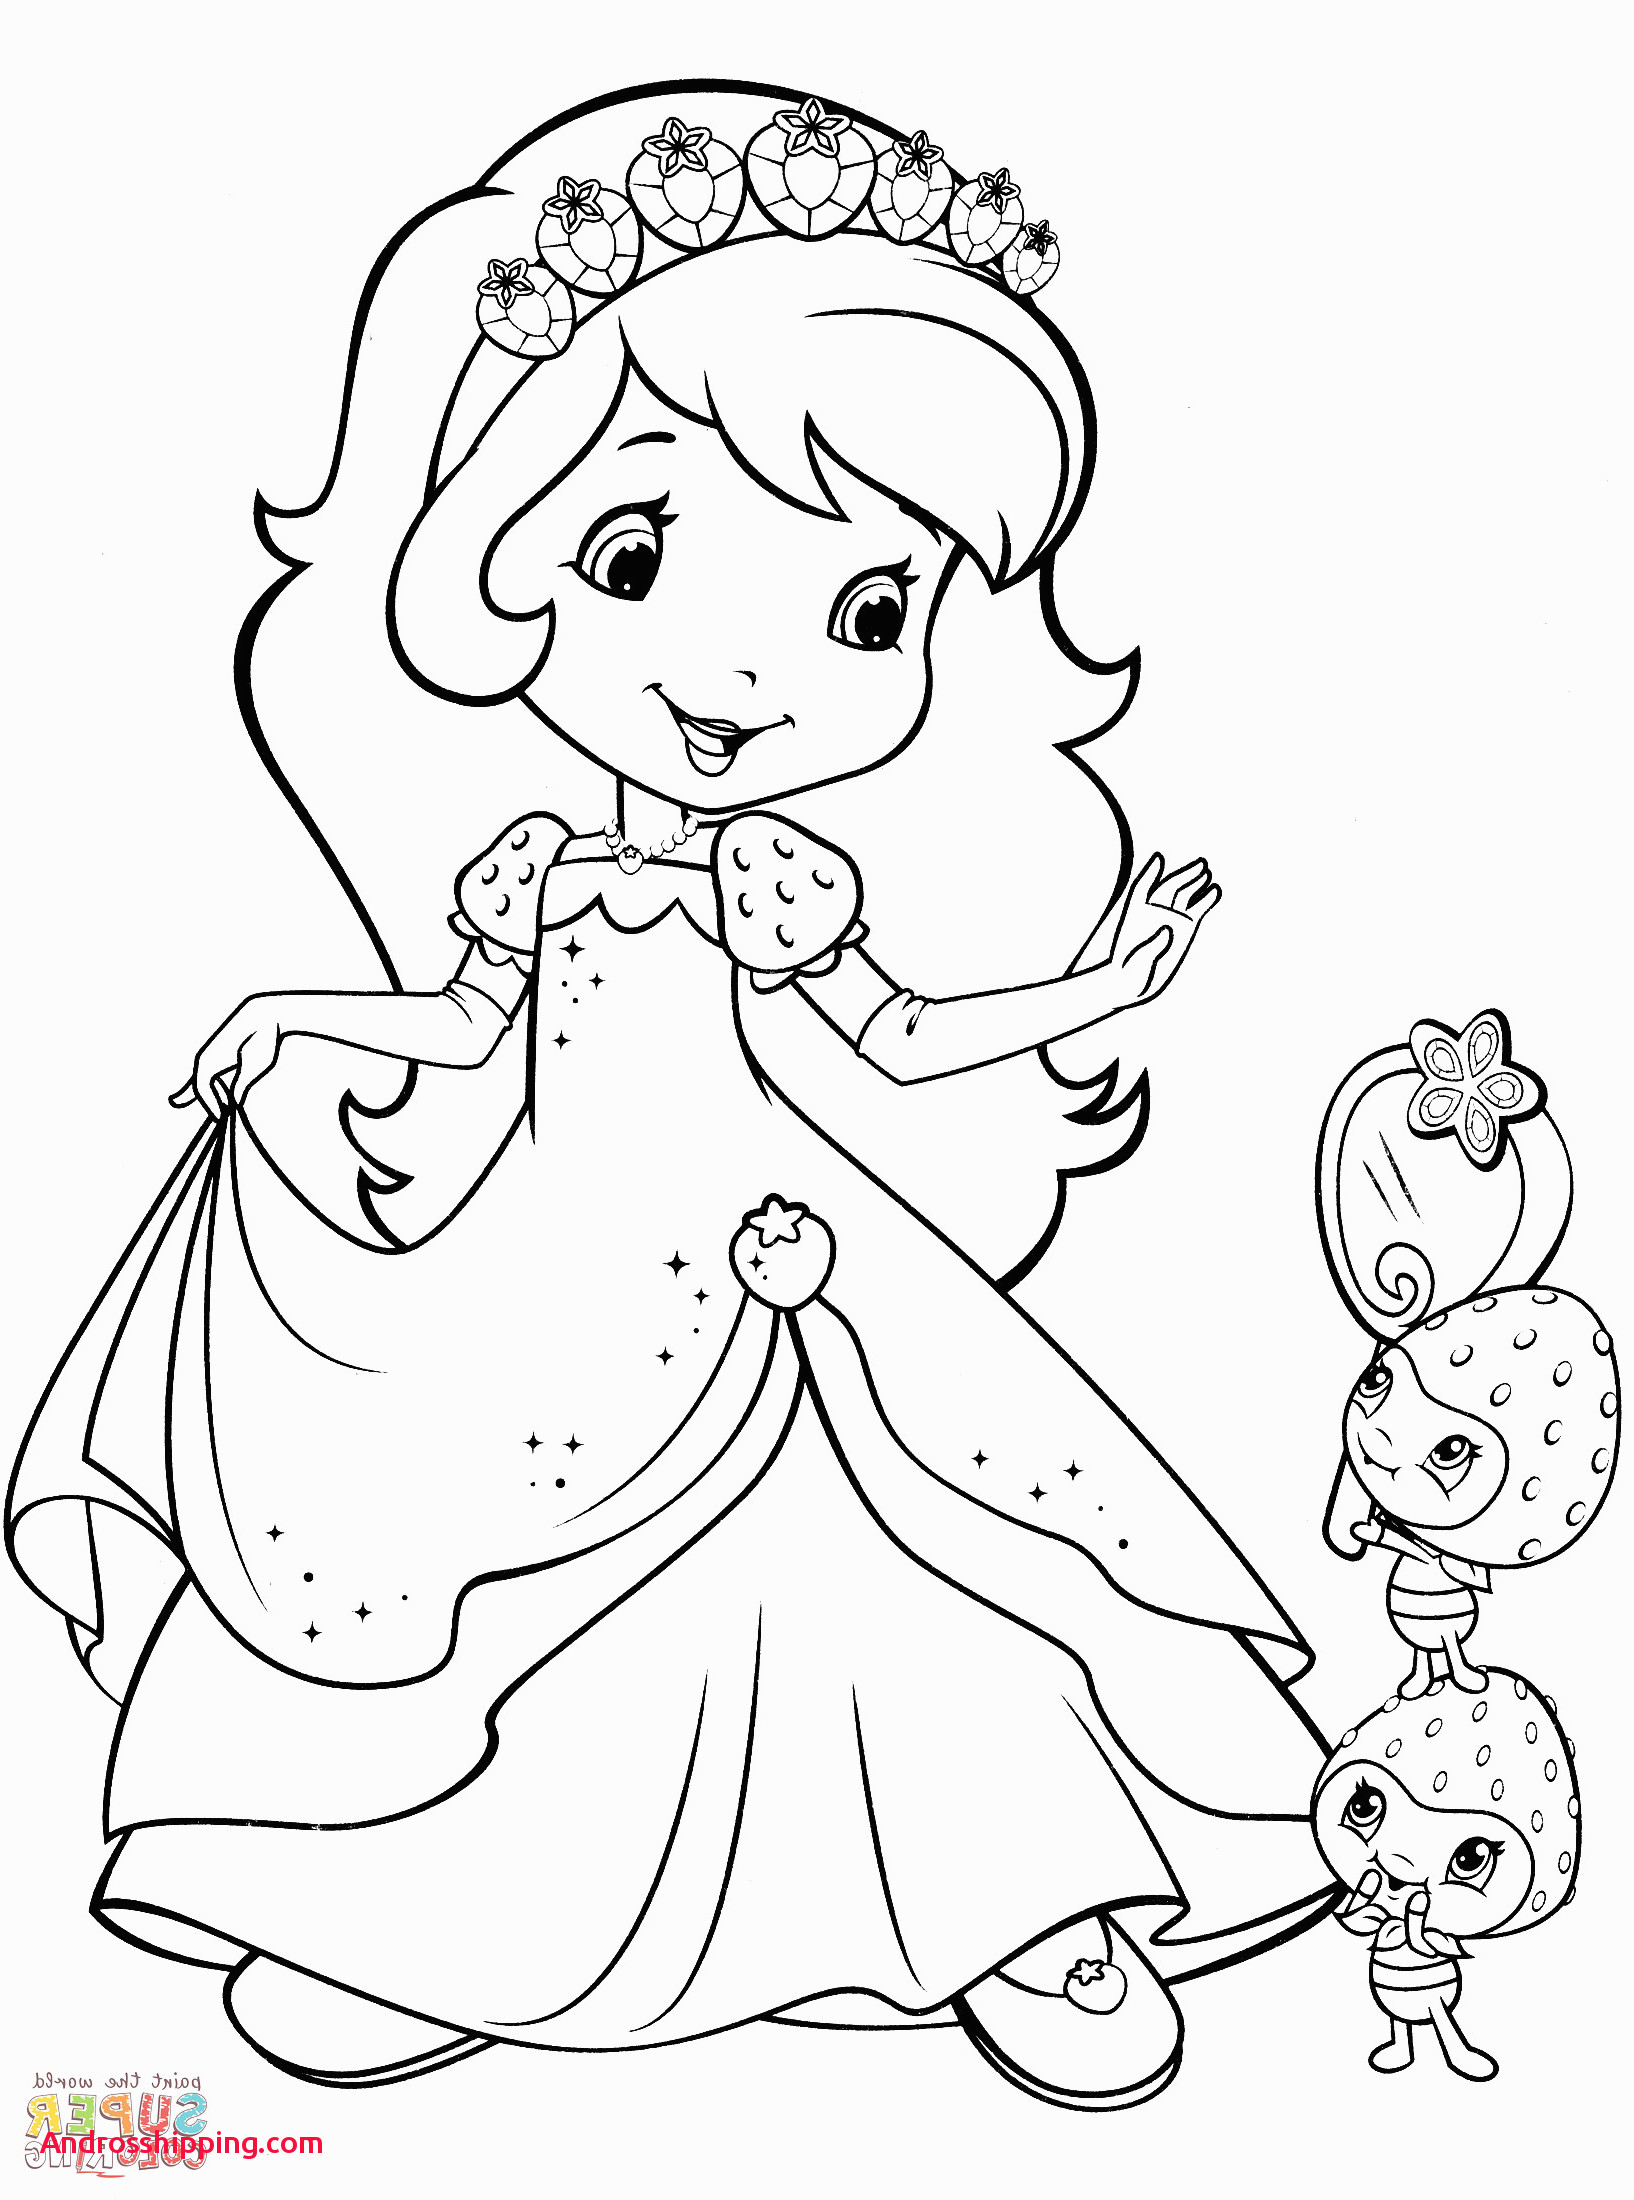 Strawberry Shortcake Coloring Pages  Printable 20q - Save it to your computer